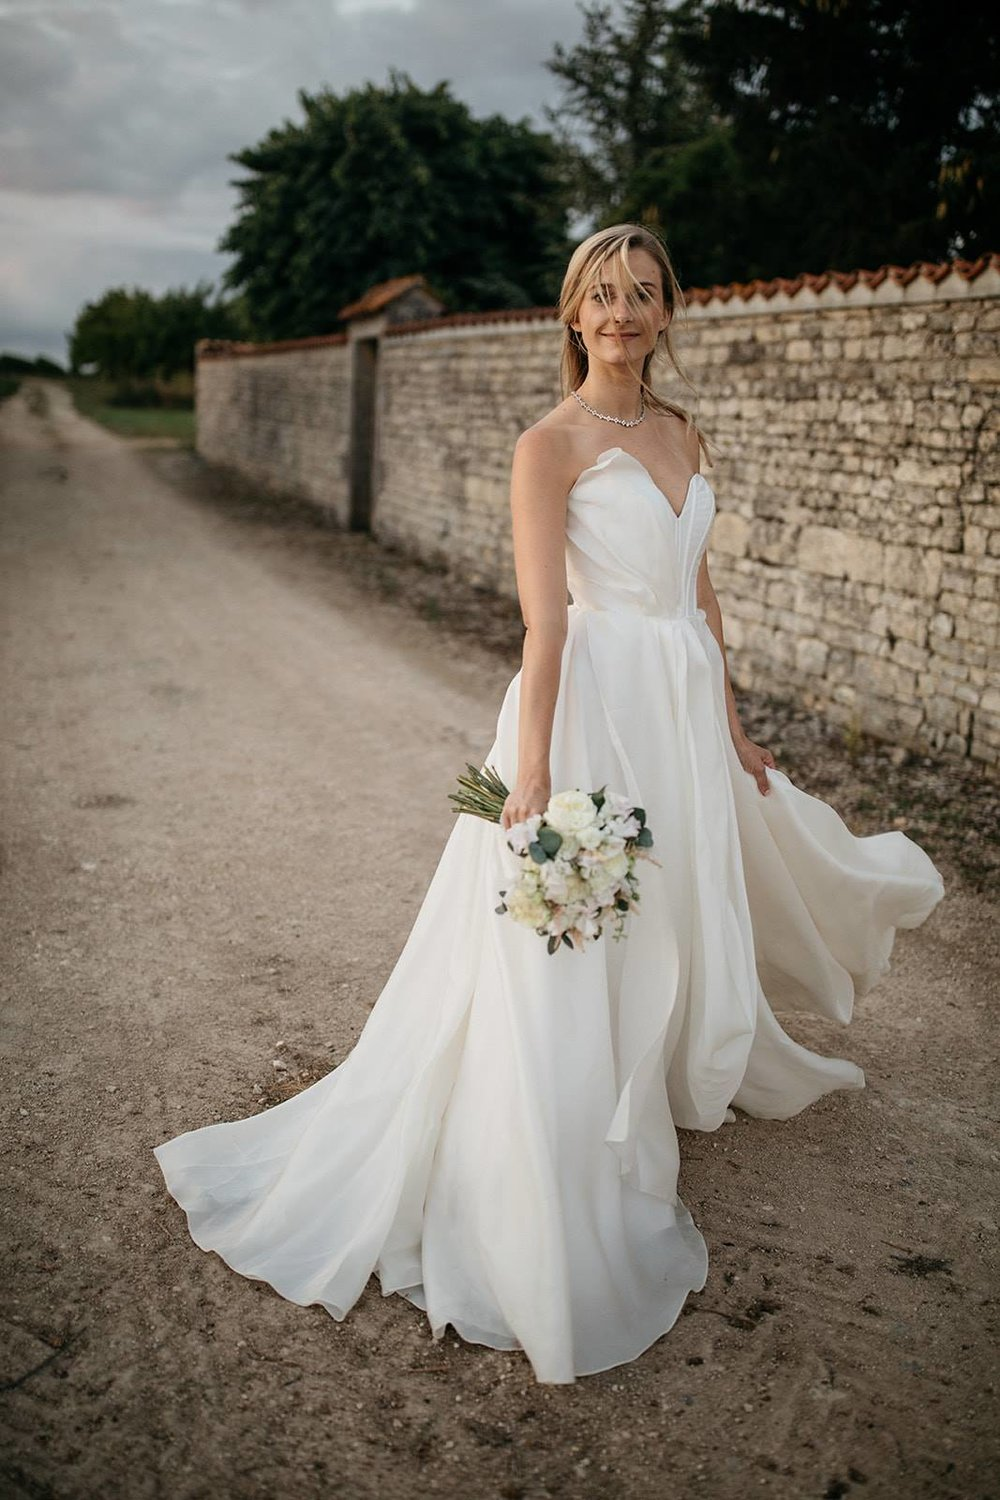 Draped ballgown architectural wedding dress2019-01-22 at 6.37.42 PM 3.jpg